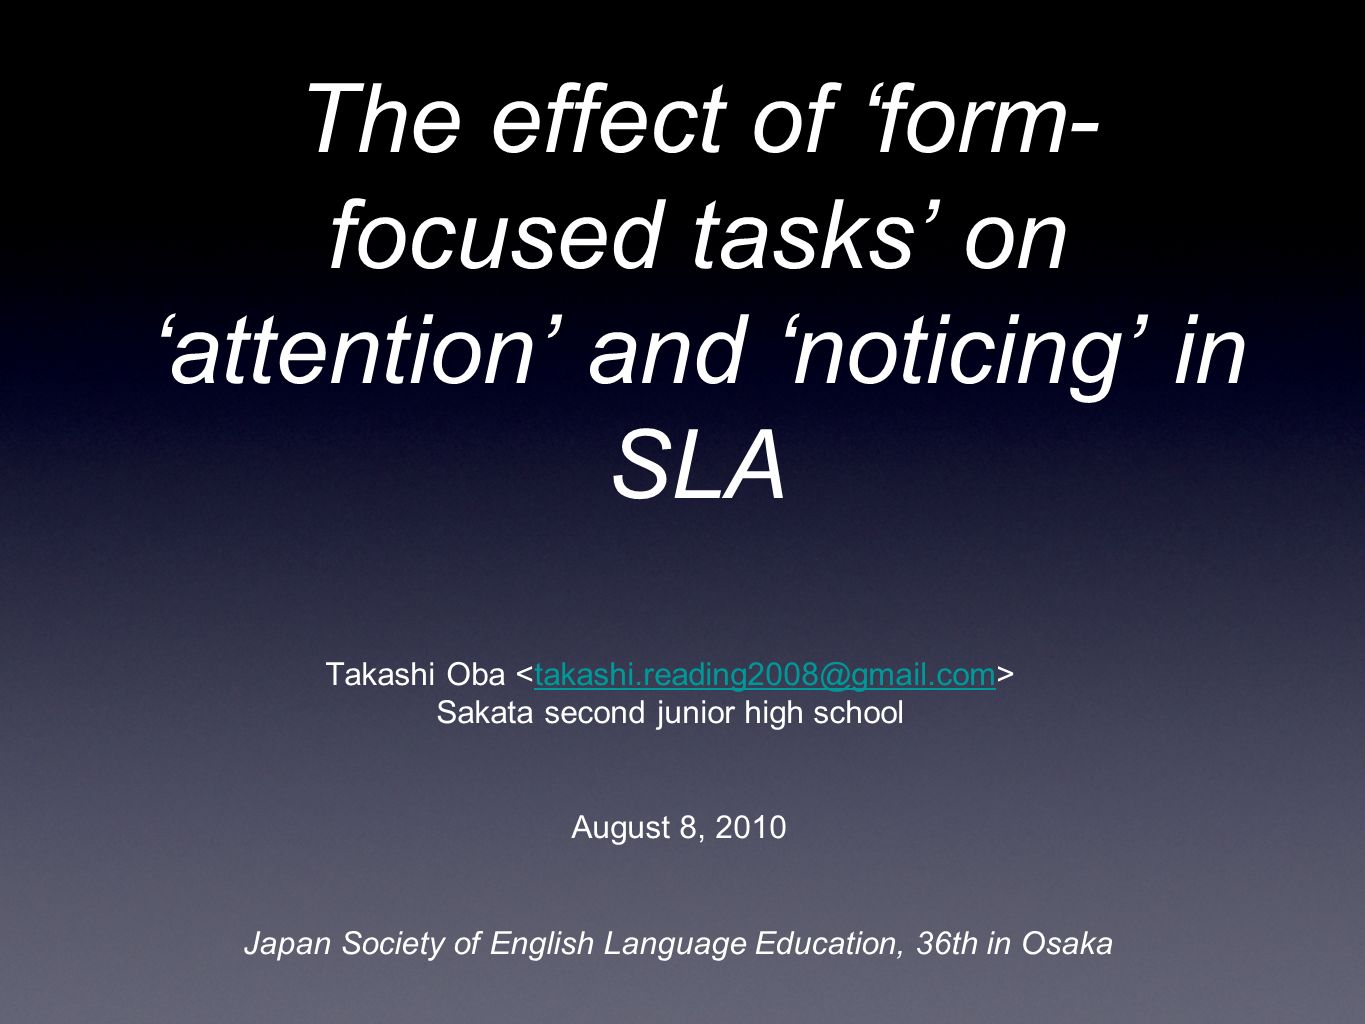 noticing in sla is it a This article focuses on the role of noticing and noticing the gap in second language acquisition it is argued that this notion has gained wide support on the basis of intuition and assumption rather than on the findings of appropriate and exhaustive empirical research the aim of this paper is twofold: a) to consider the.